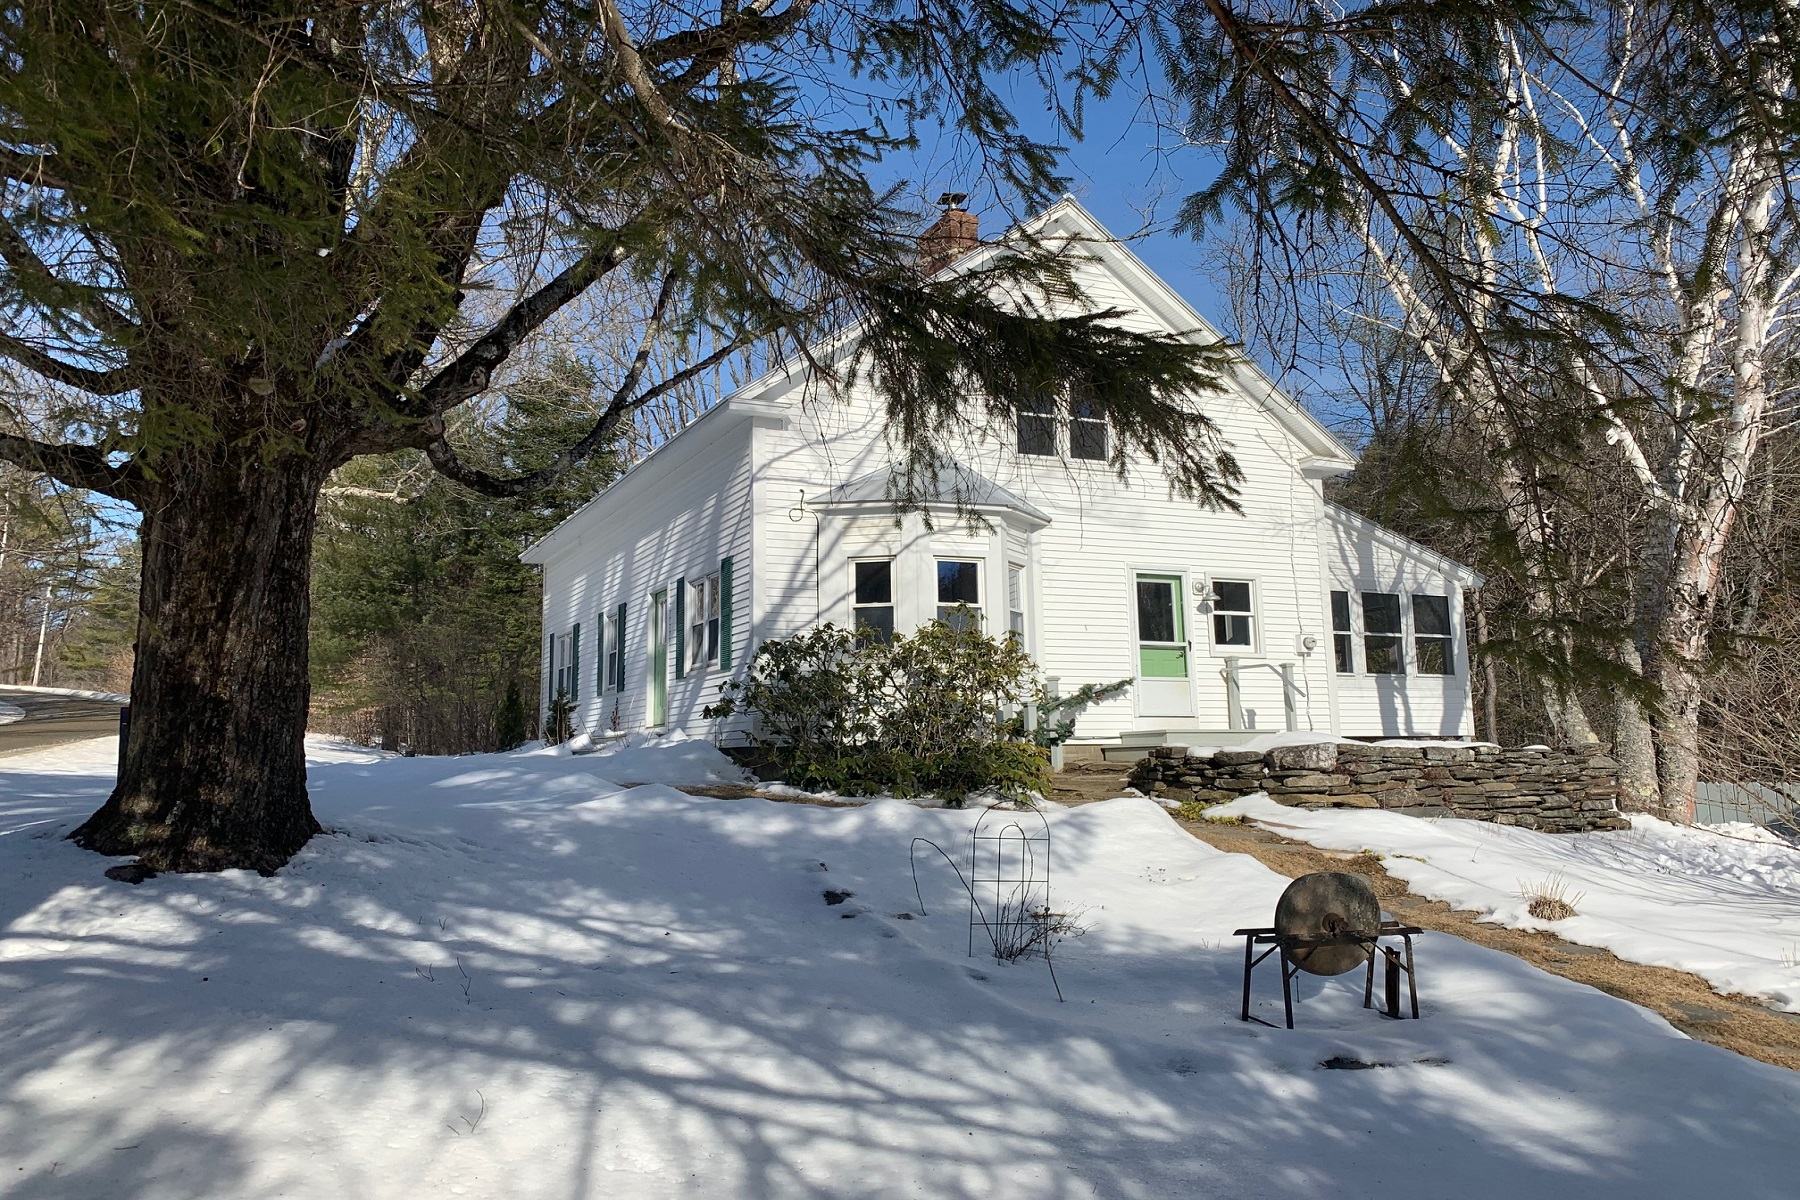 Property for Sale at Totally Restored 1940 Farmhouse 2620 Rush Meadow Road West Windsor, Vermont 05037 United States